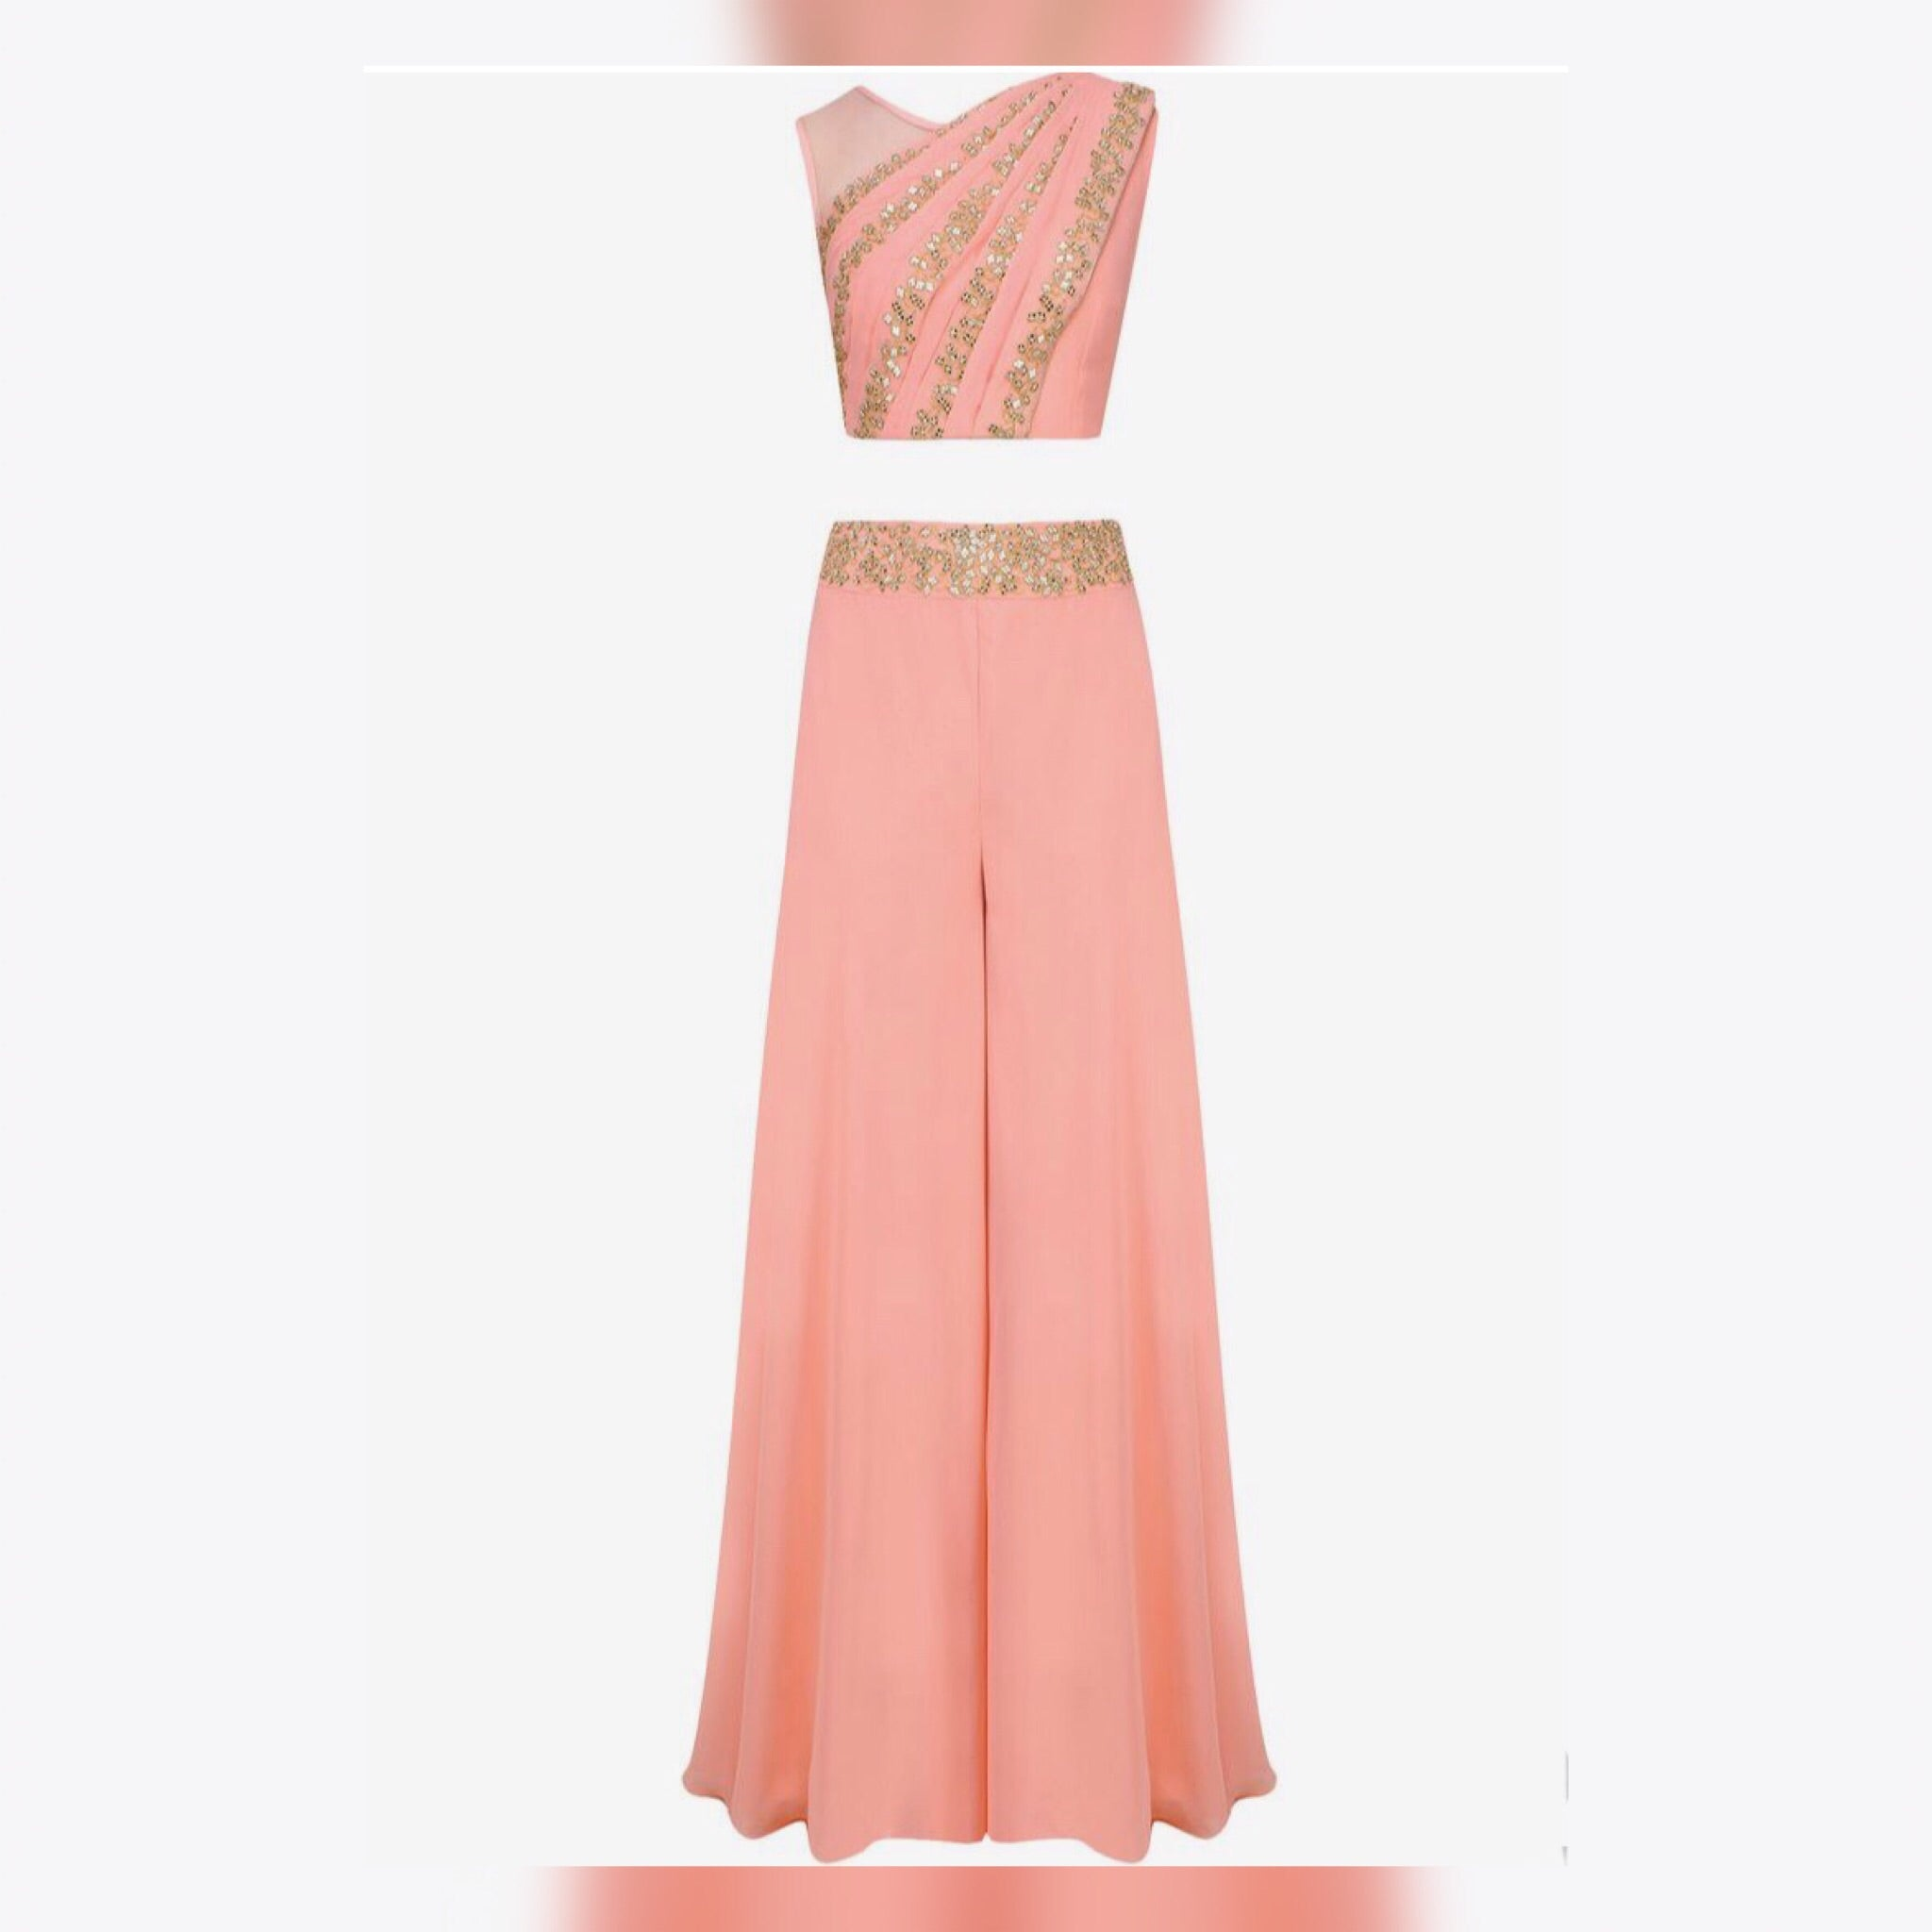 Peach Georgette Embroidered Indian Fashion Outfit Online Shopping